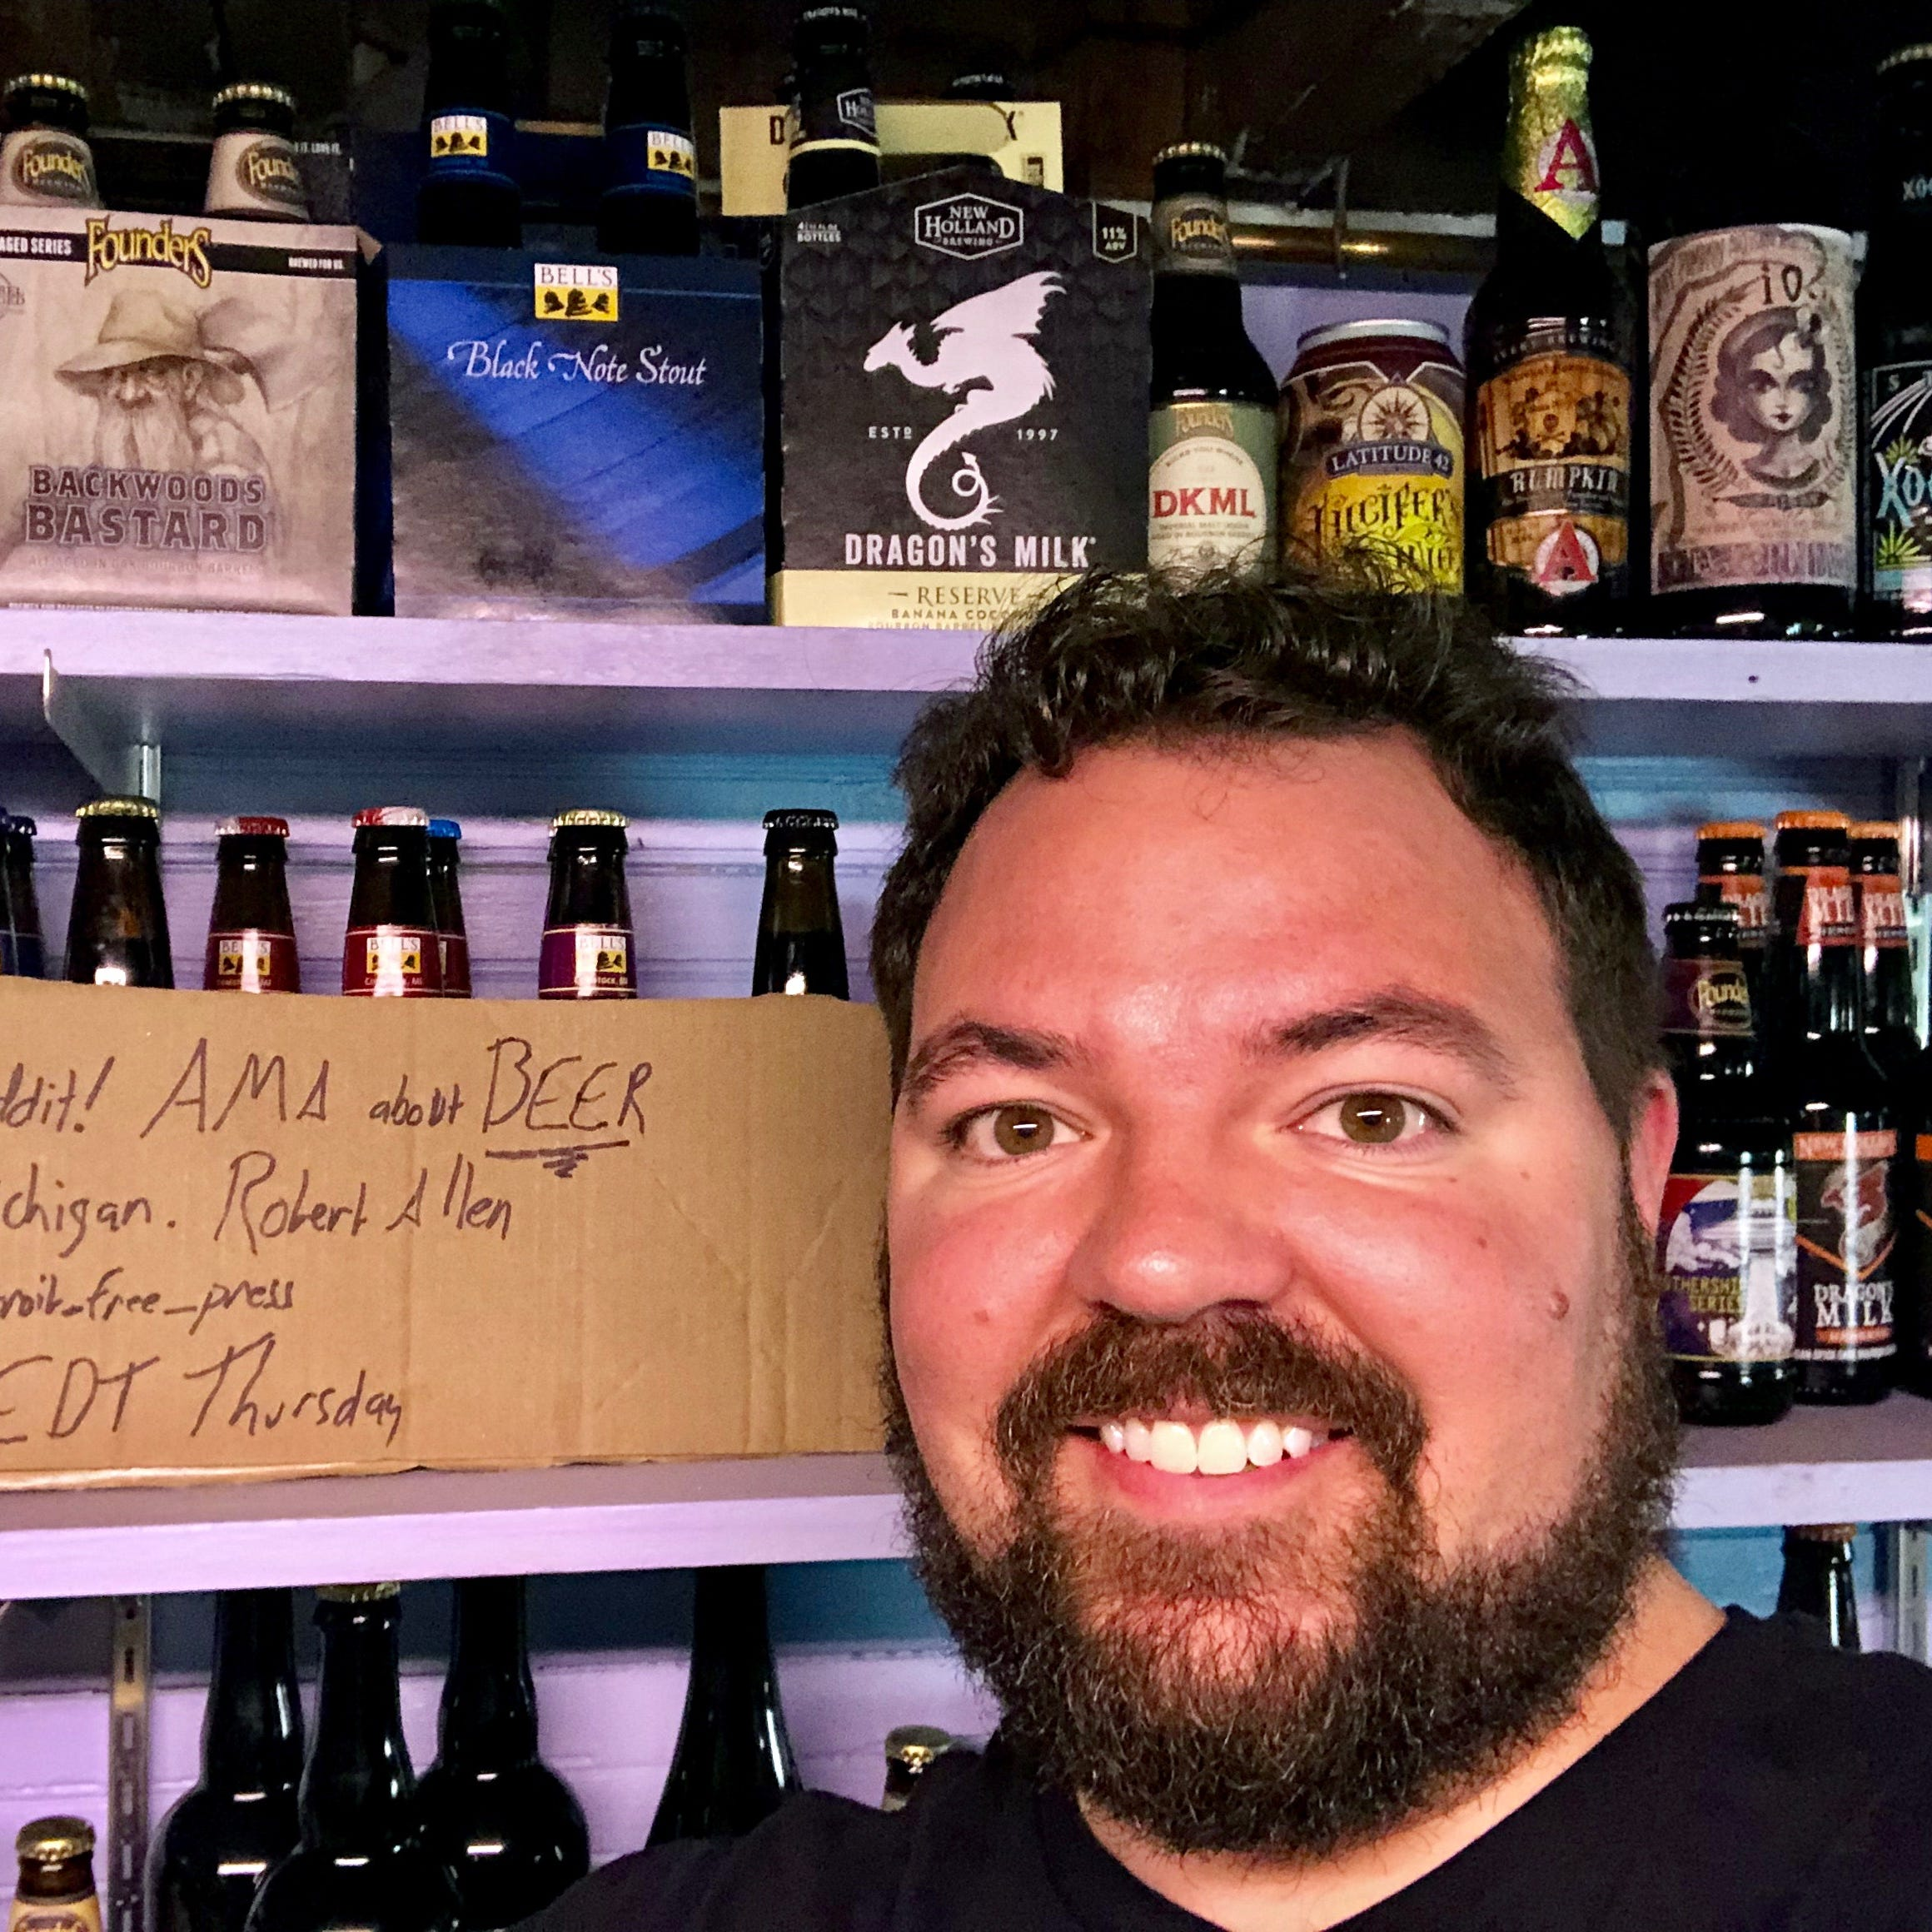 Learn more about Michigan craft beer in our Reddit AMA!